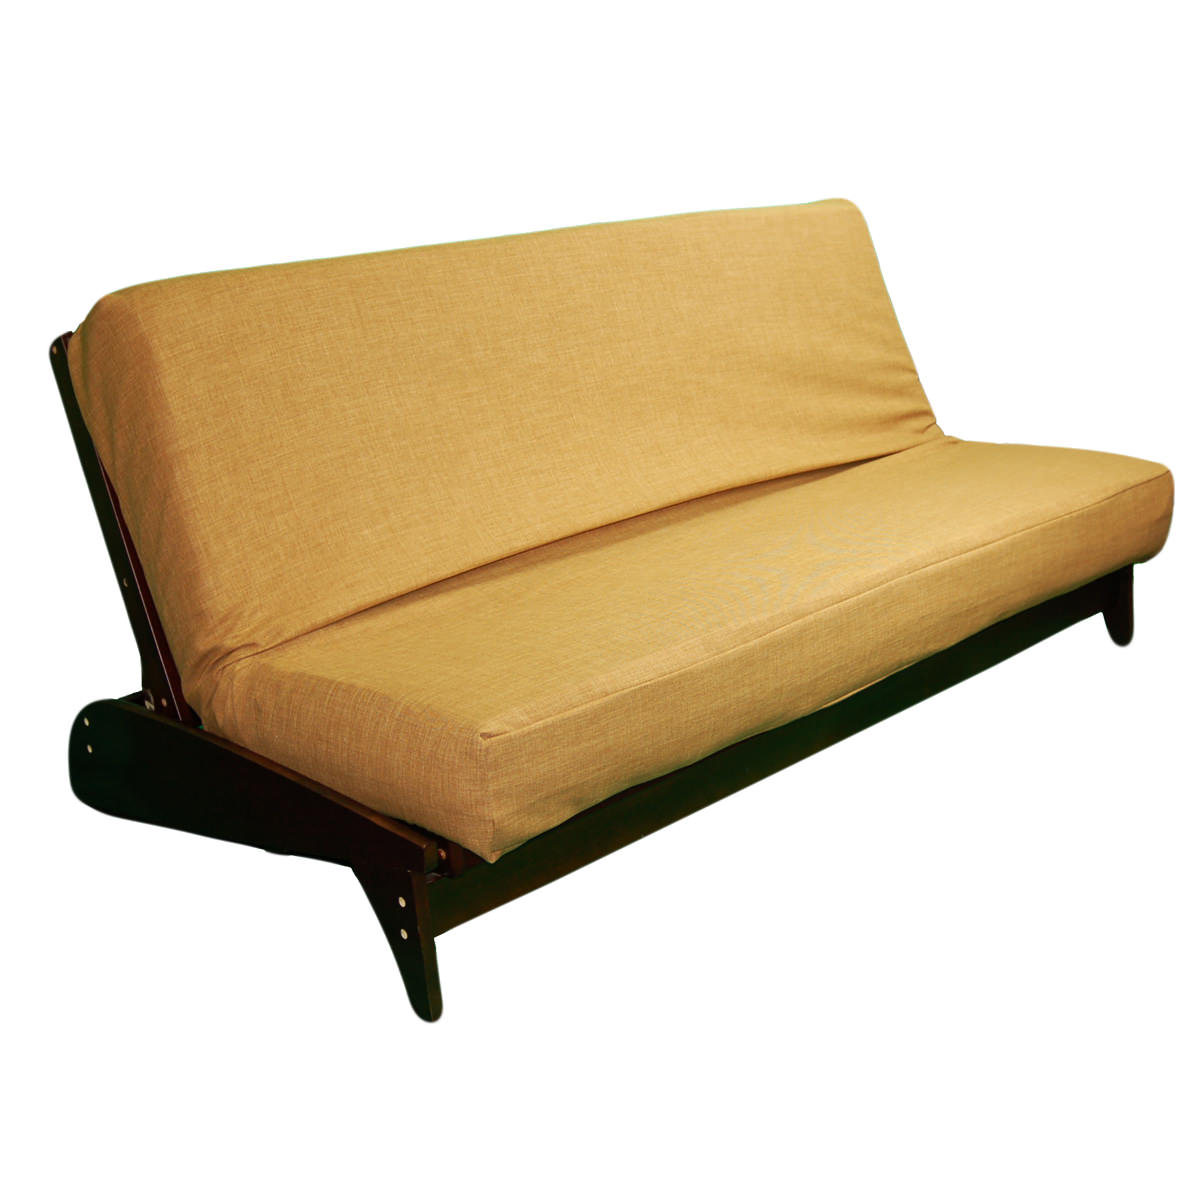 Discount Futon Covers Buy Futon Covers Online And Cheap